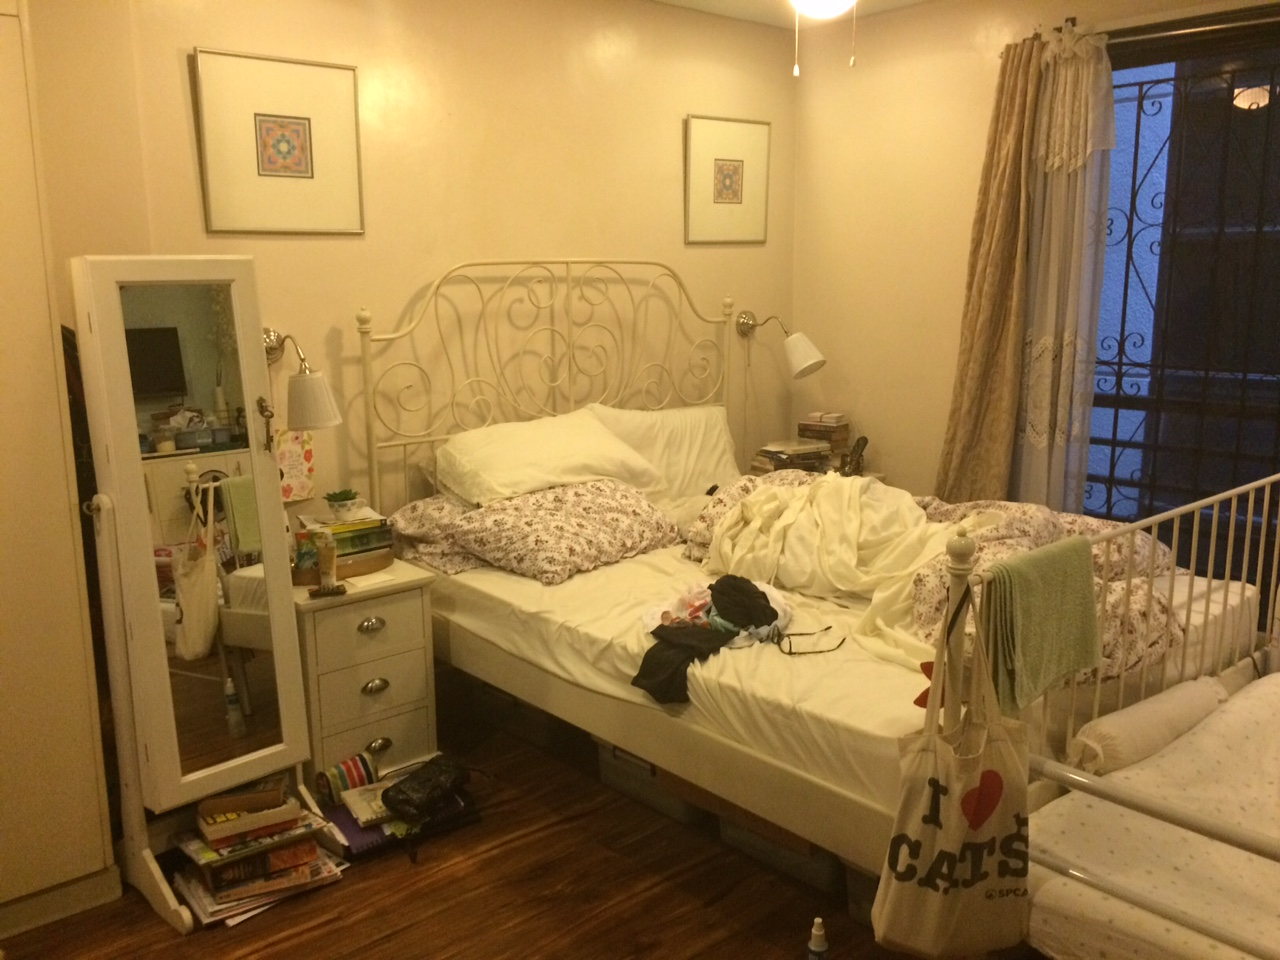 Monday morning how to Clean up a messy room  Gal at Home